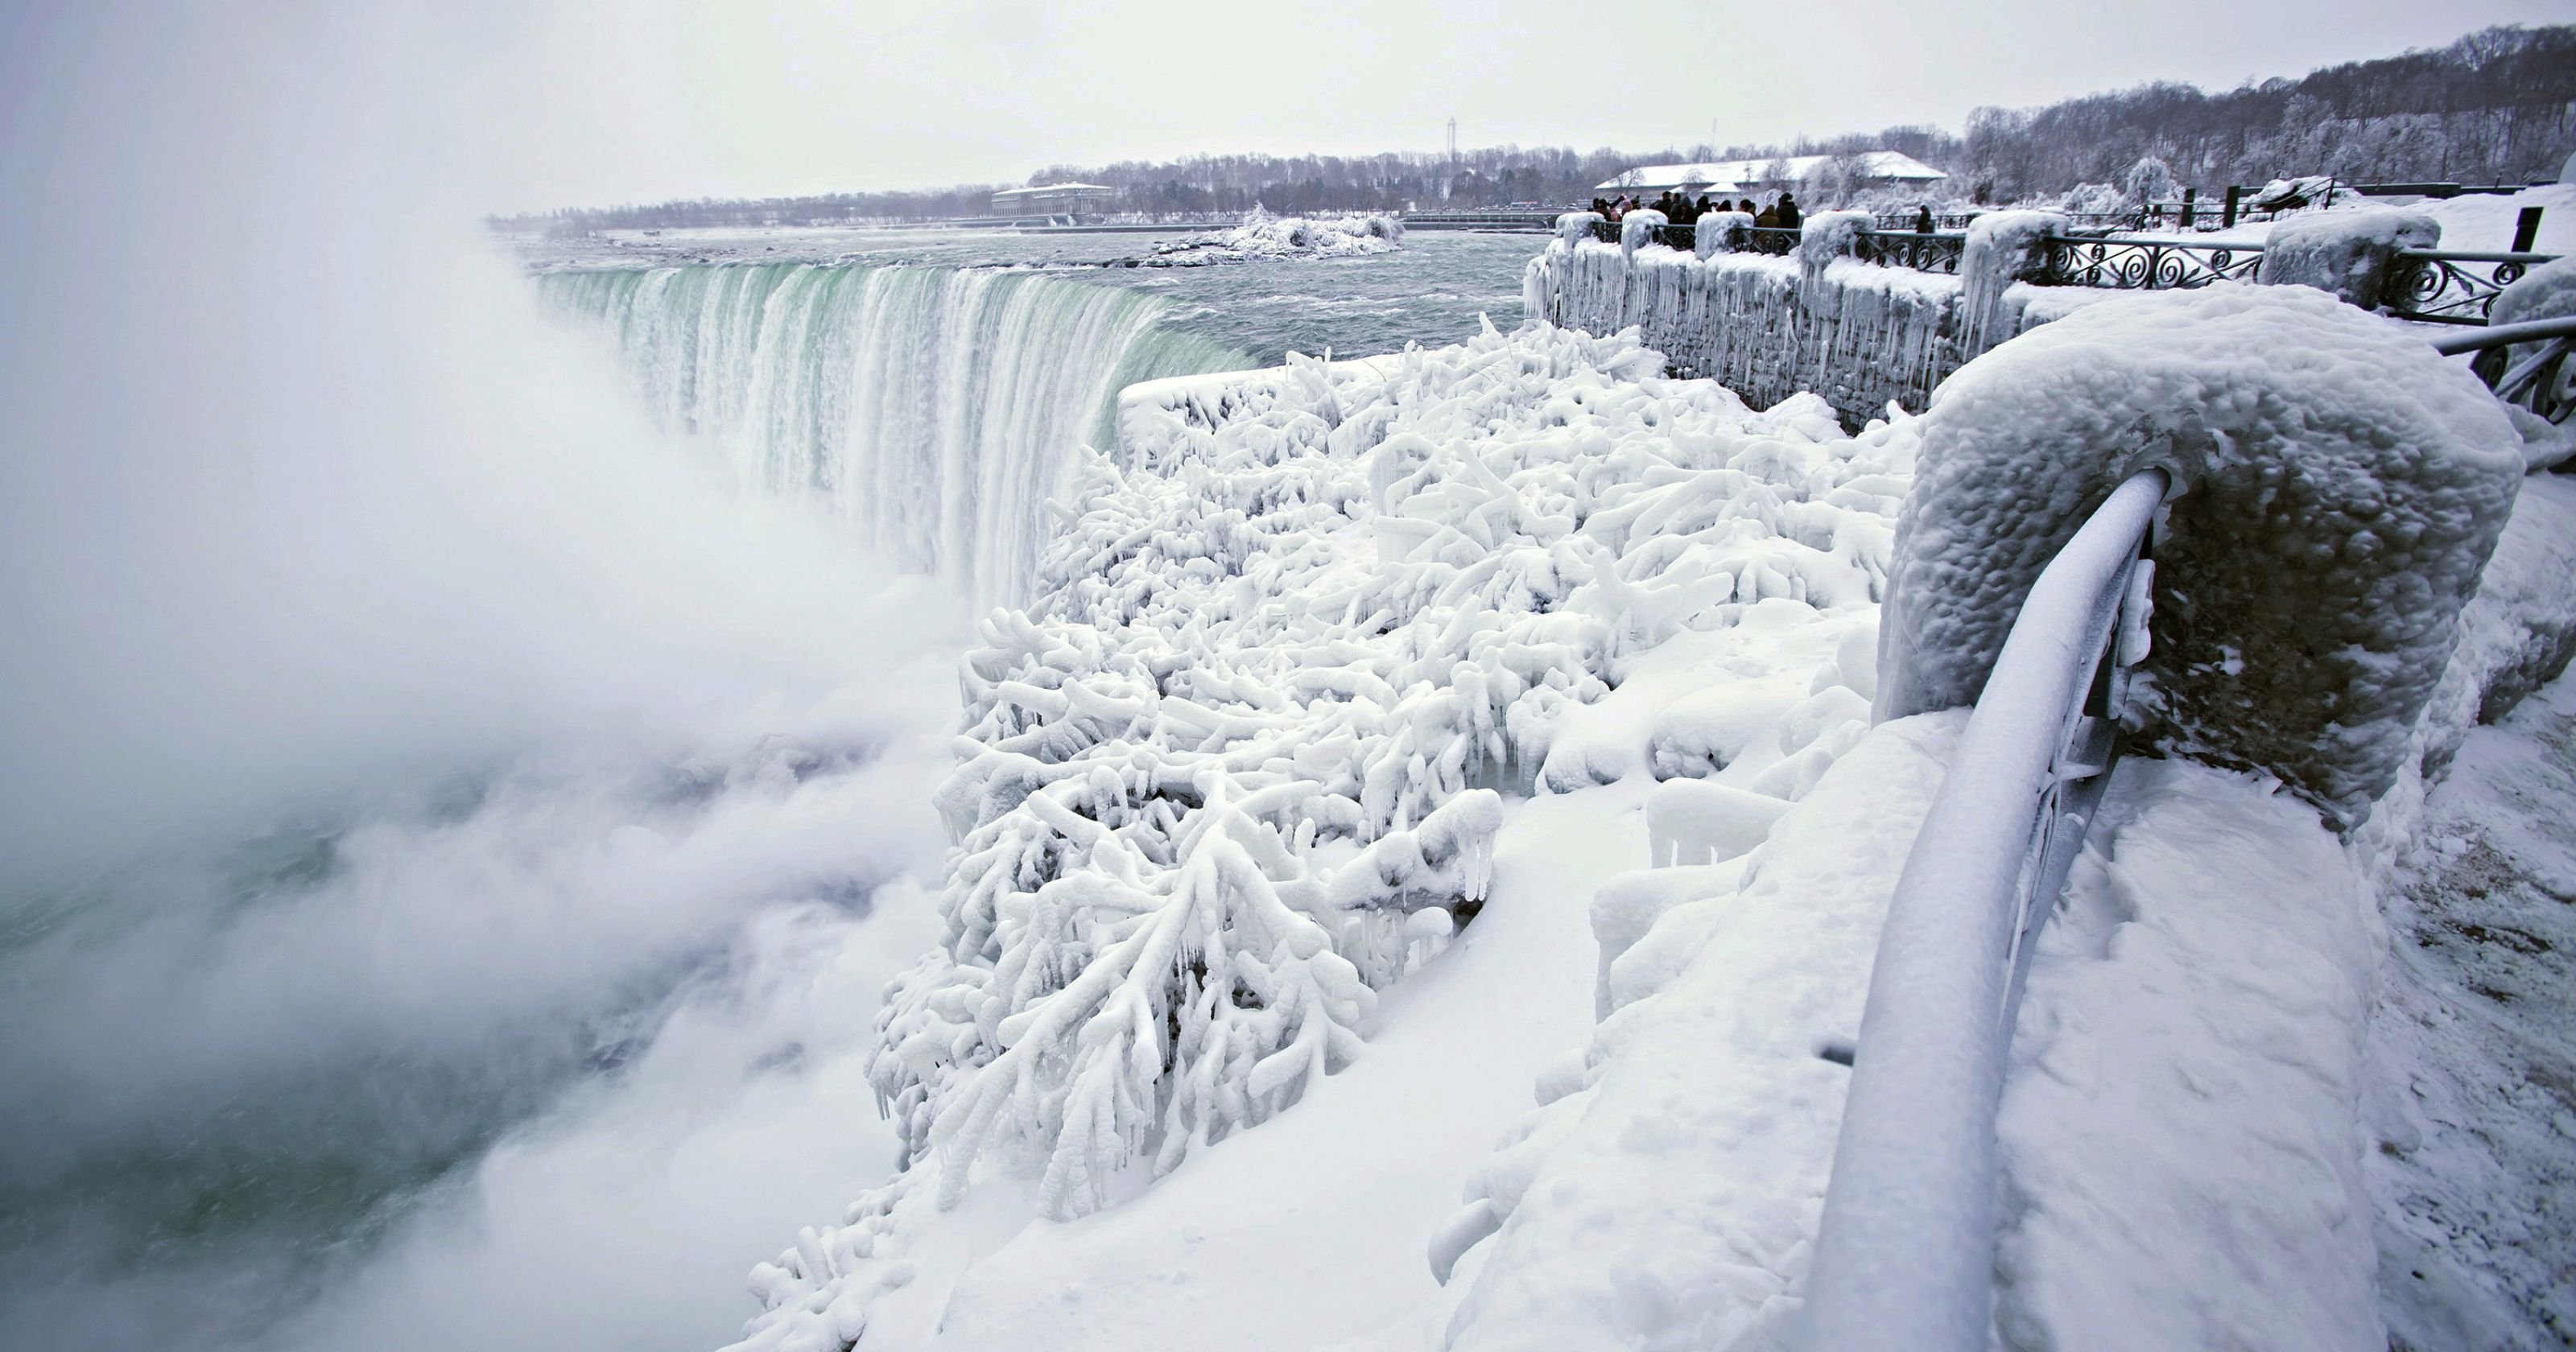 Visite as Cataratas do Niagara no Inverno!